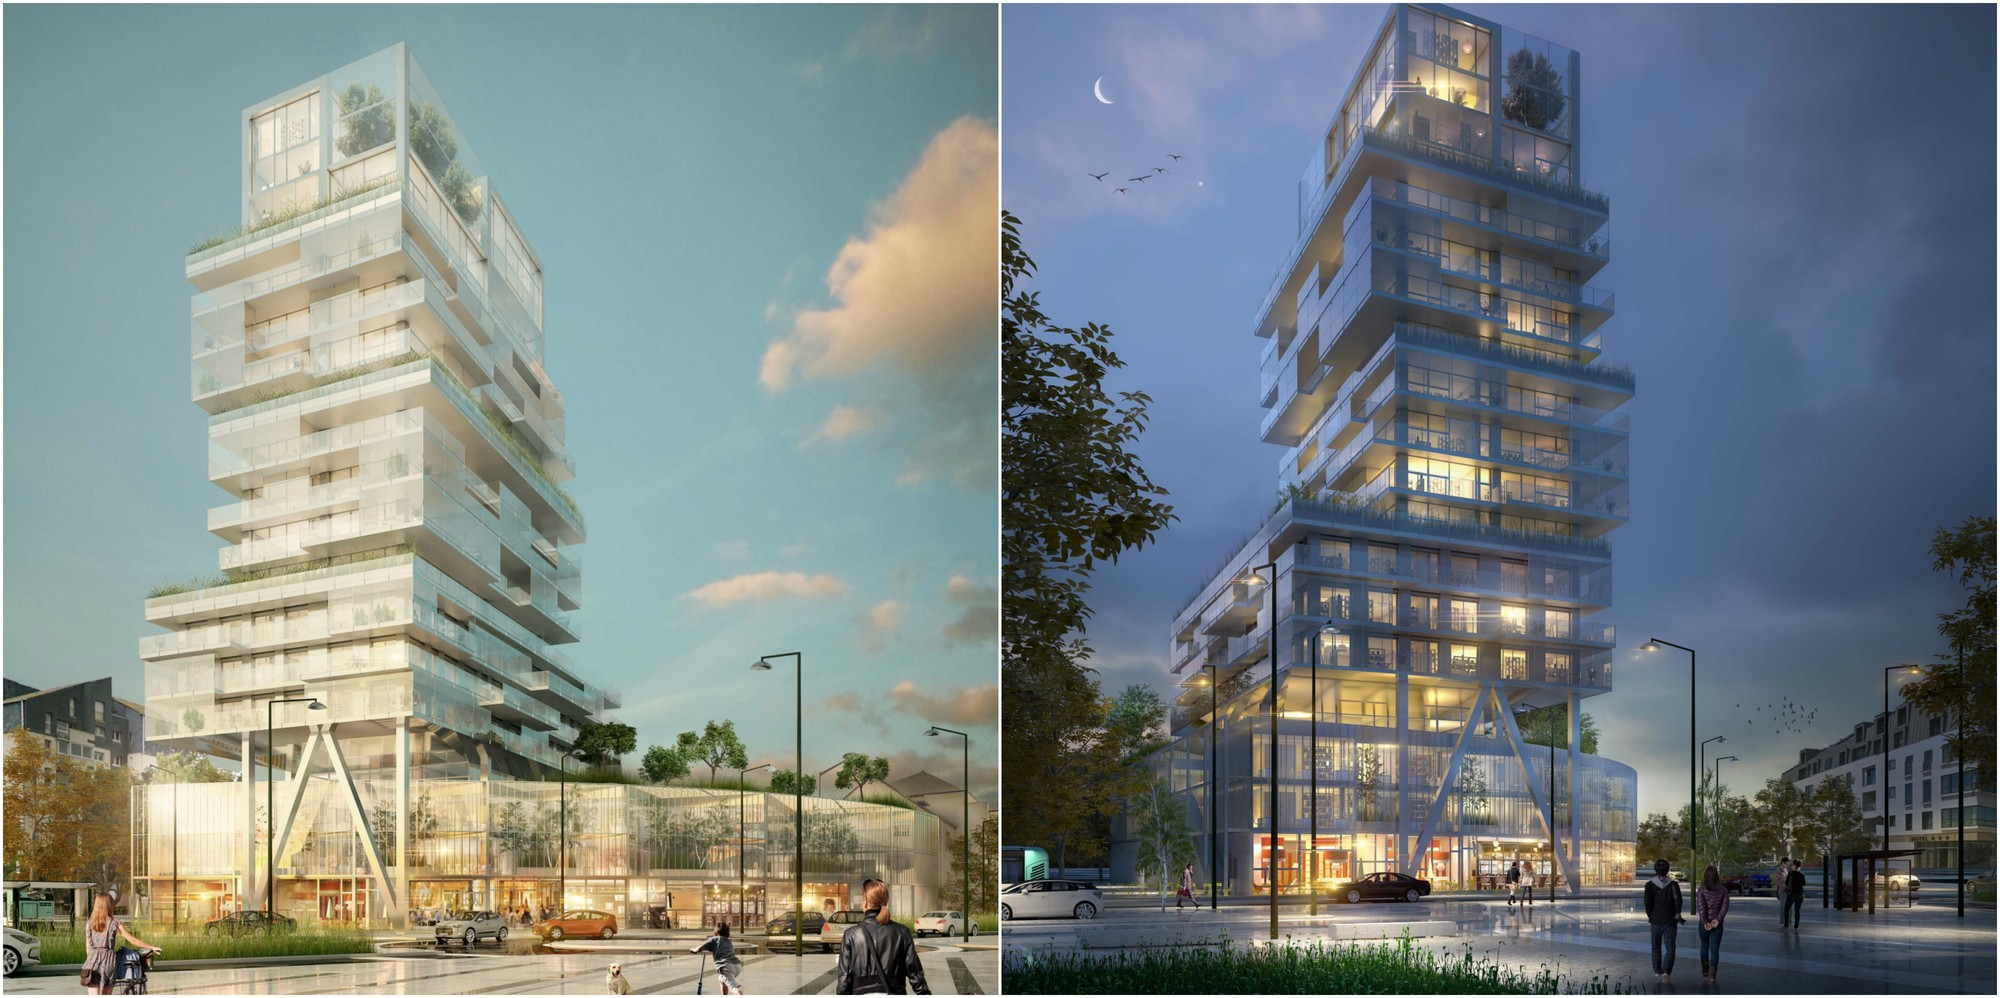 Luminous Transparent Mixed Use Tower Will Mark the